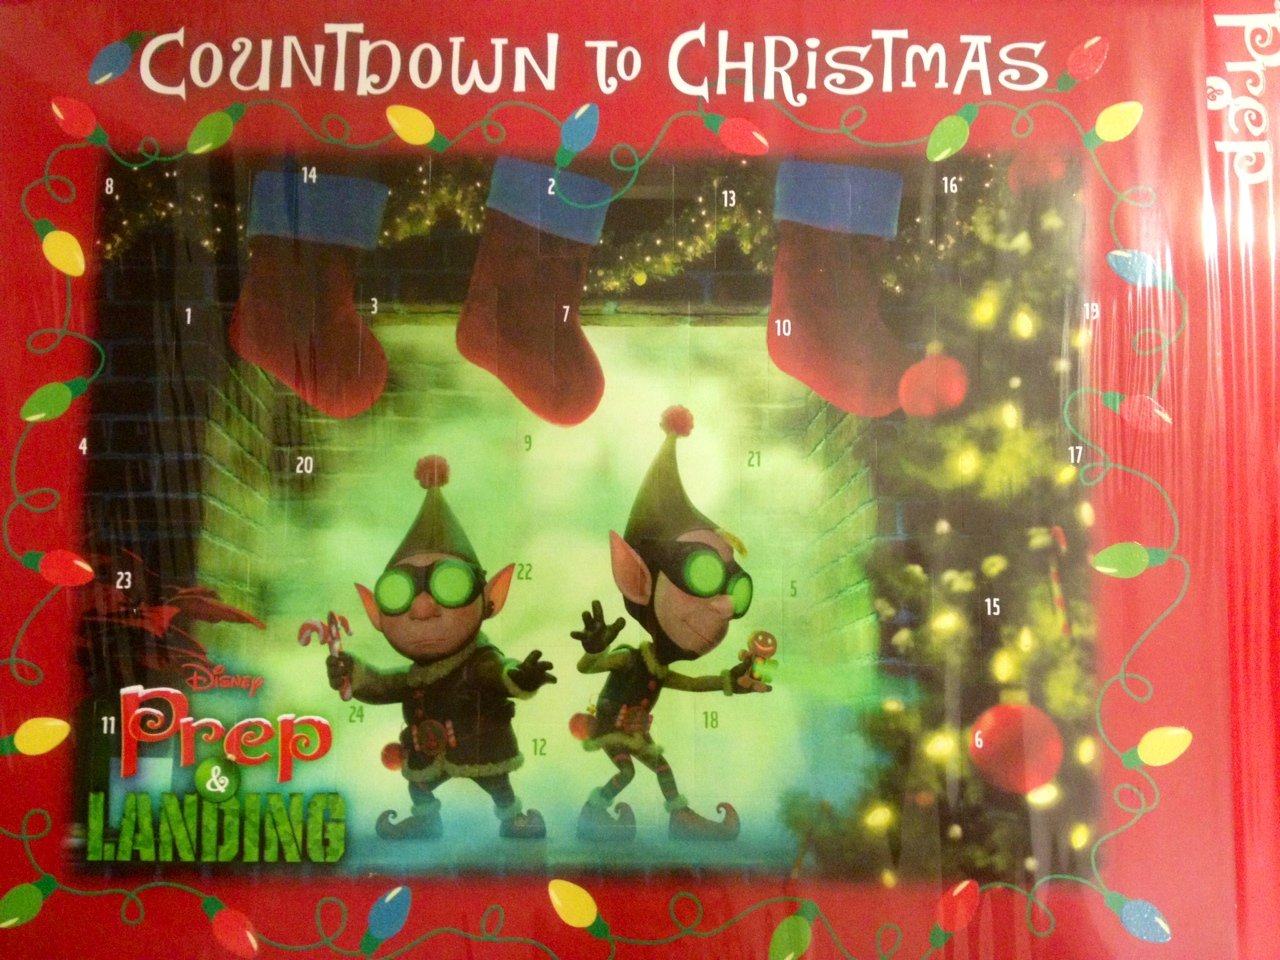 Disney Prep and Landing Countdown to Christmas Advent Calendar